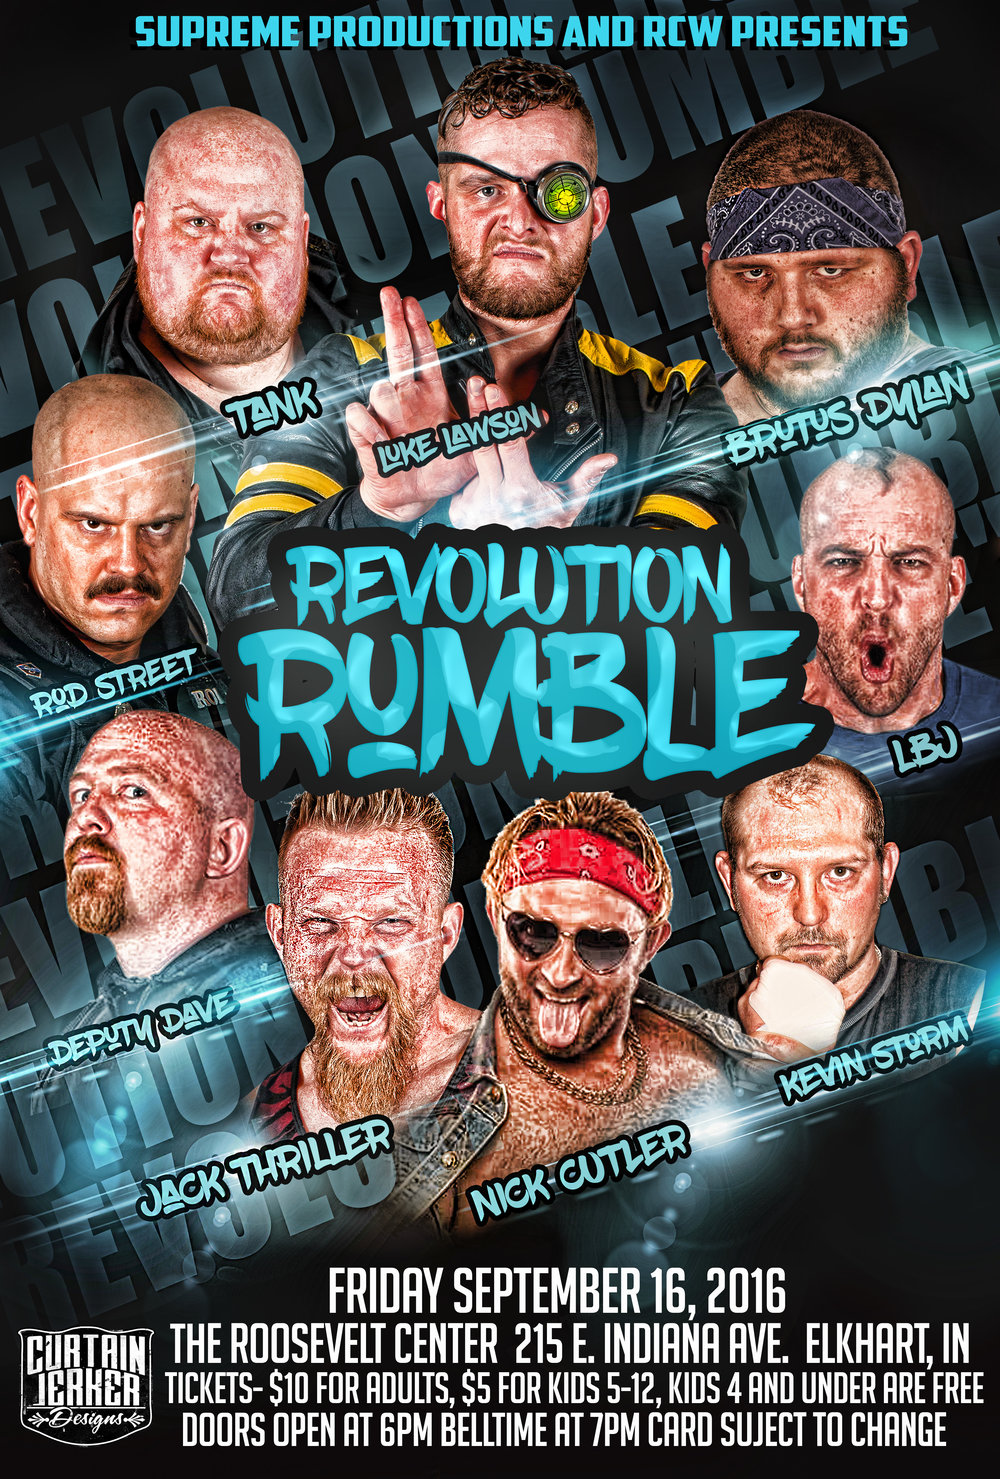 RCW+Revolution+Rumble+2016-+Print+Marketing.jpg